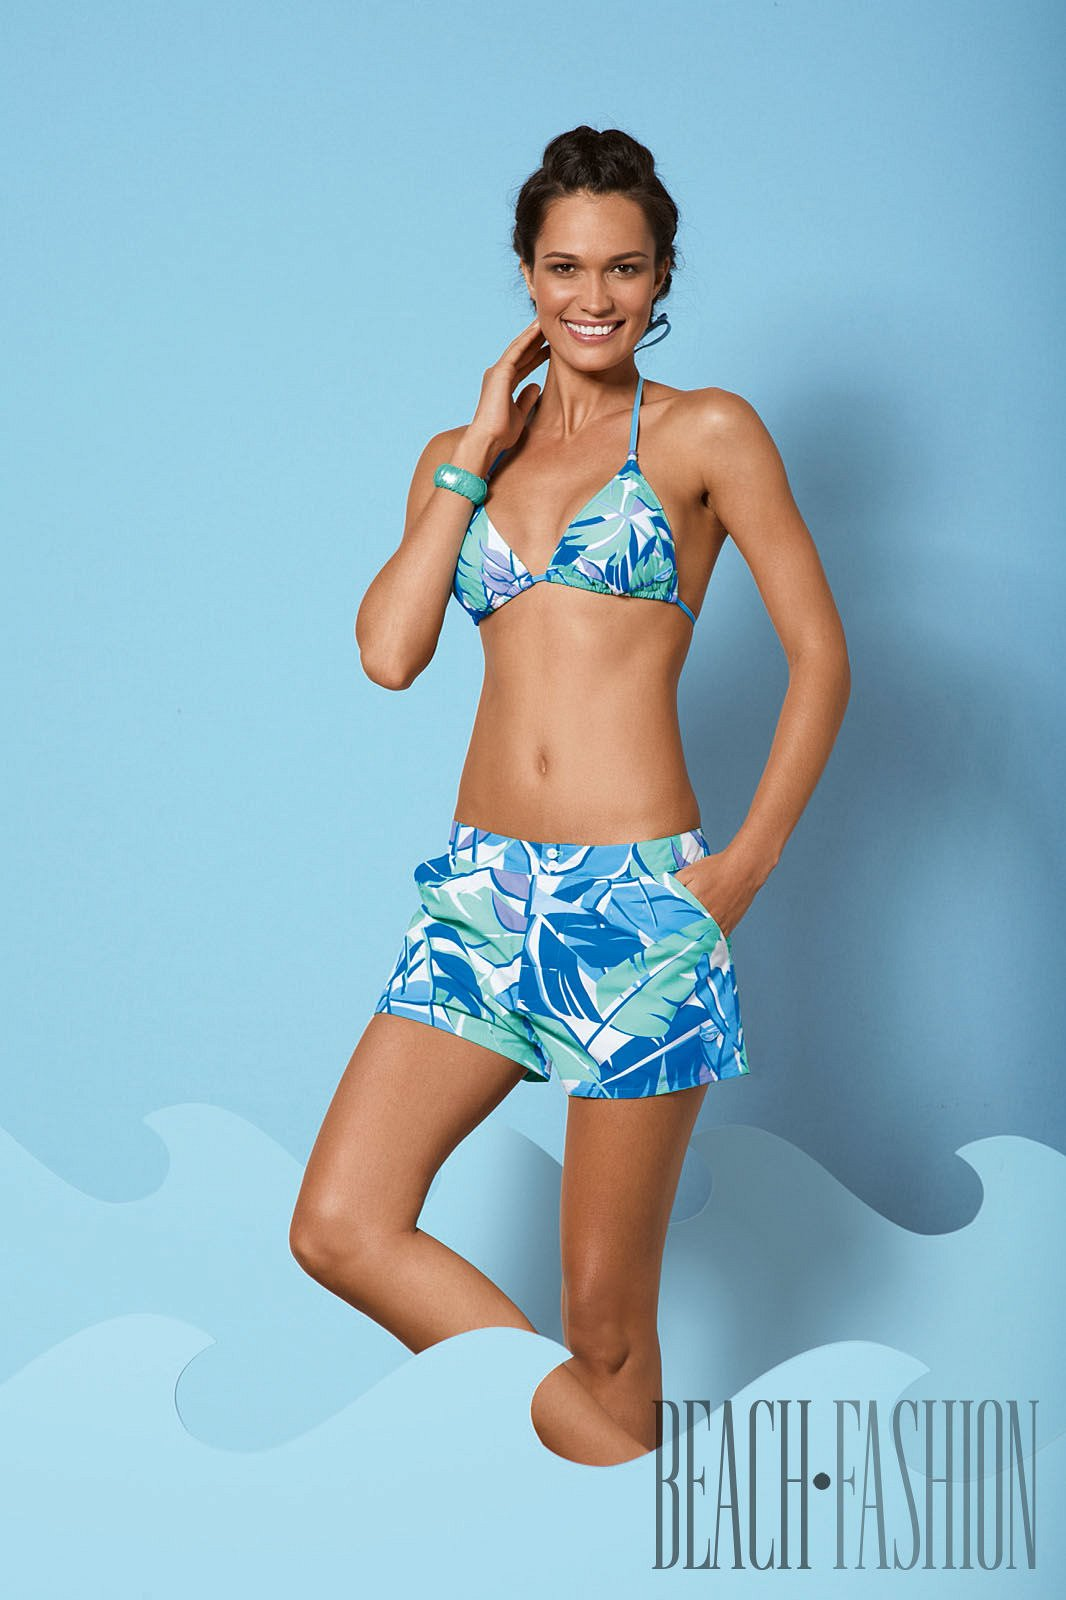 Communication on this topic: Sauvage 2012 Swimwear Collection, sauvage-2012-swimwear-collection/